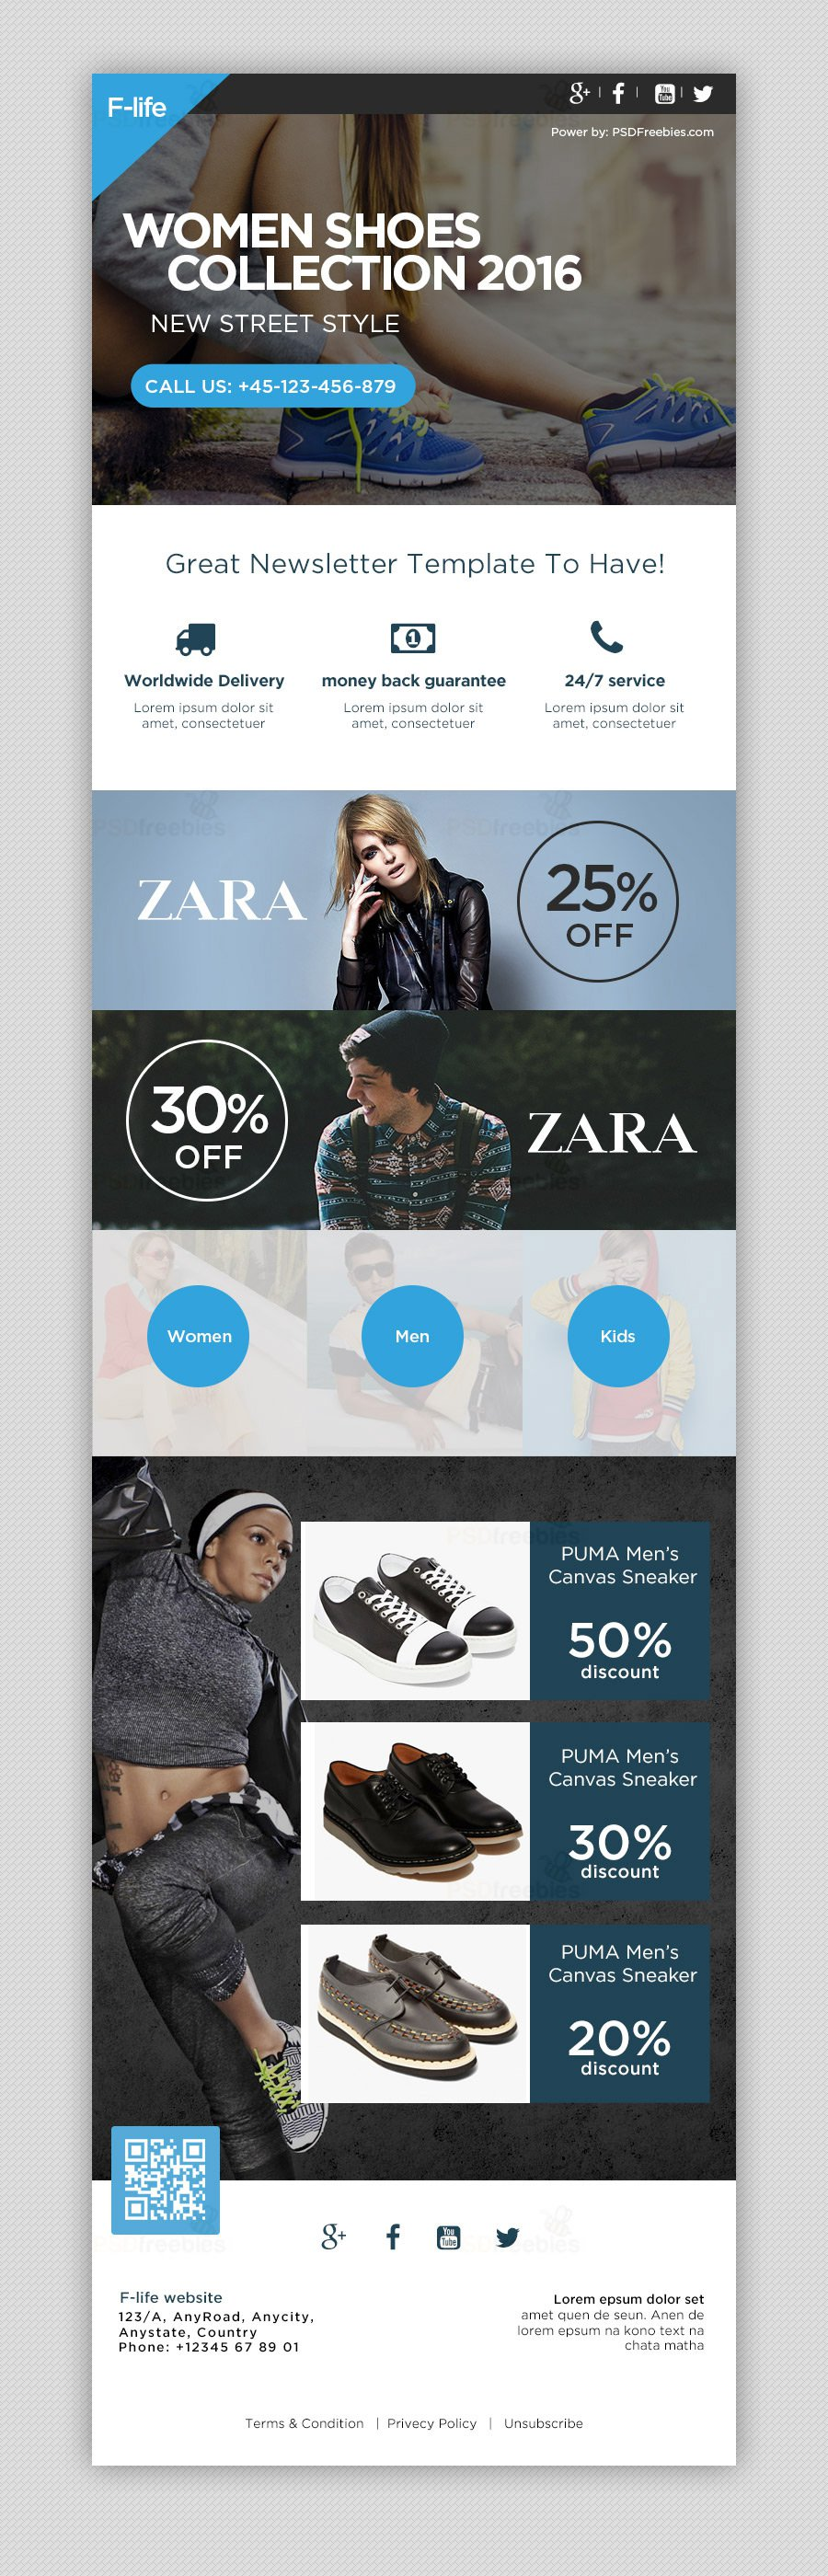 Free Email Newsletter Templates PSD » CSS Author | Email Marketing ...